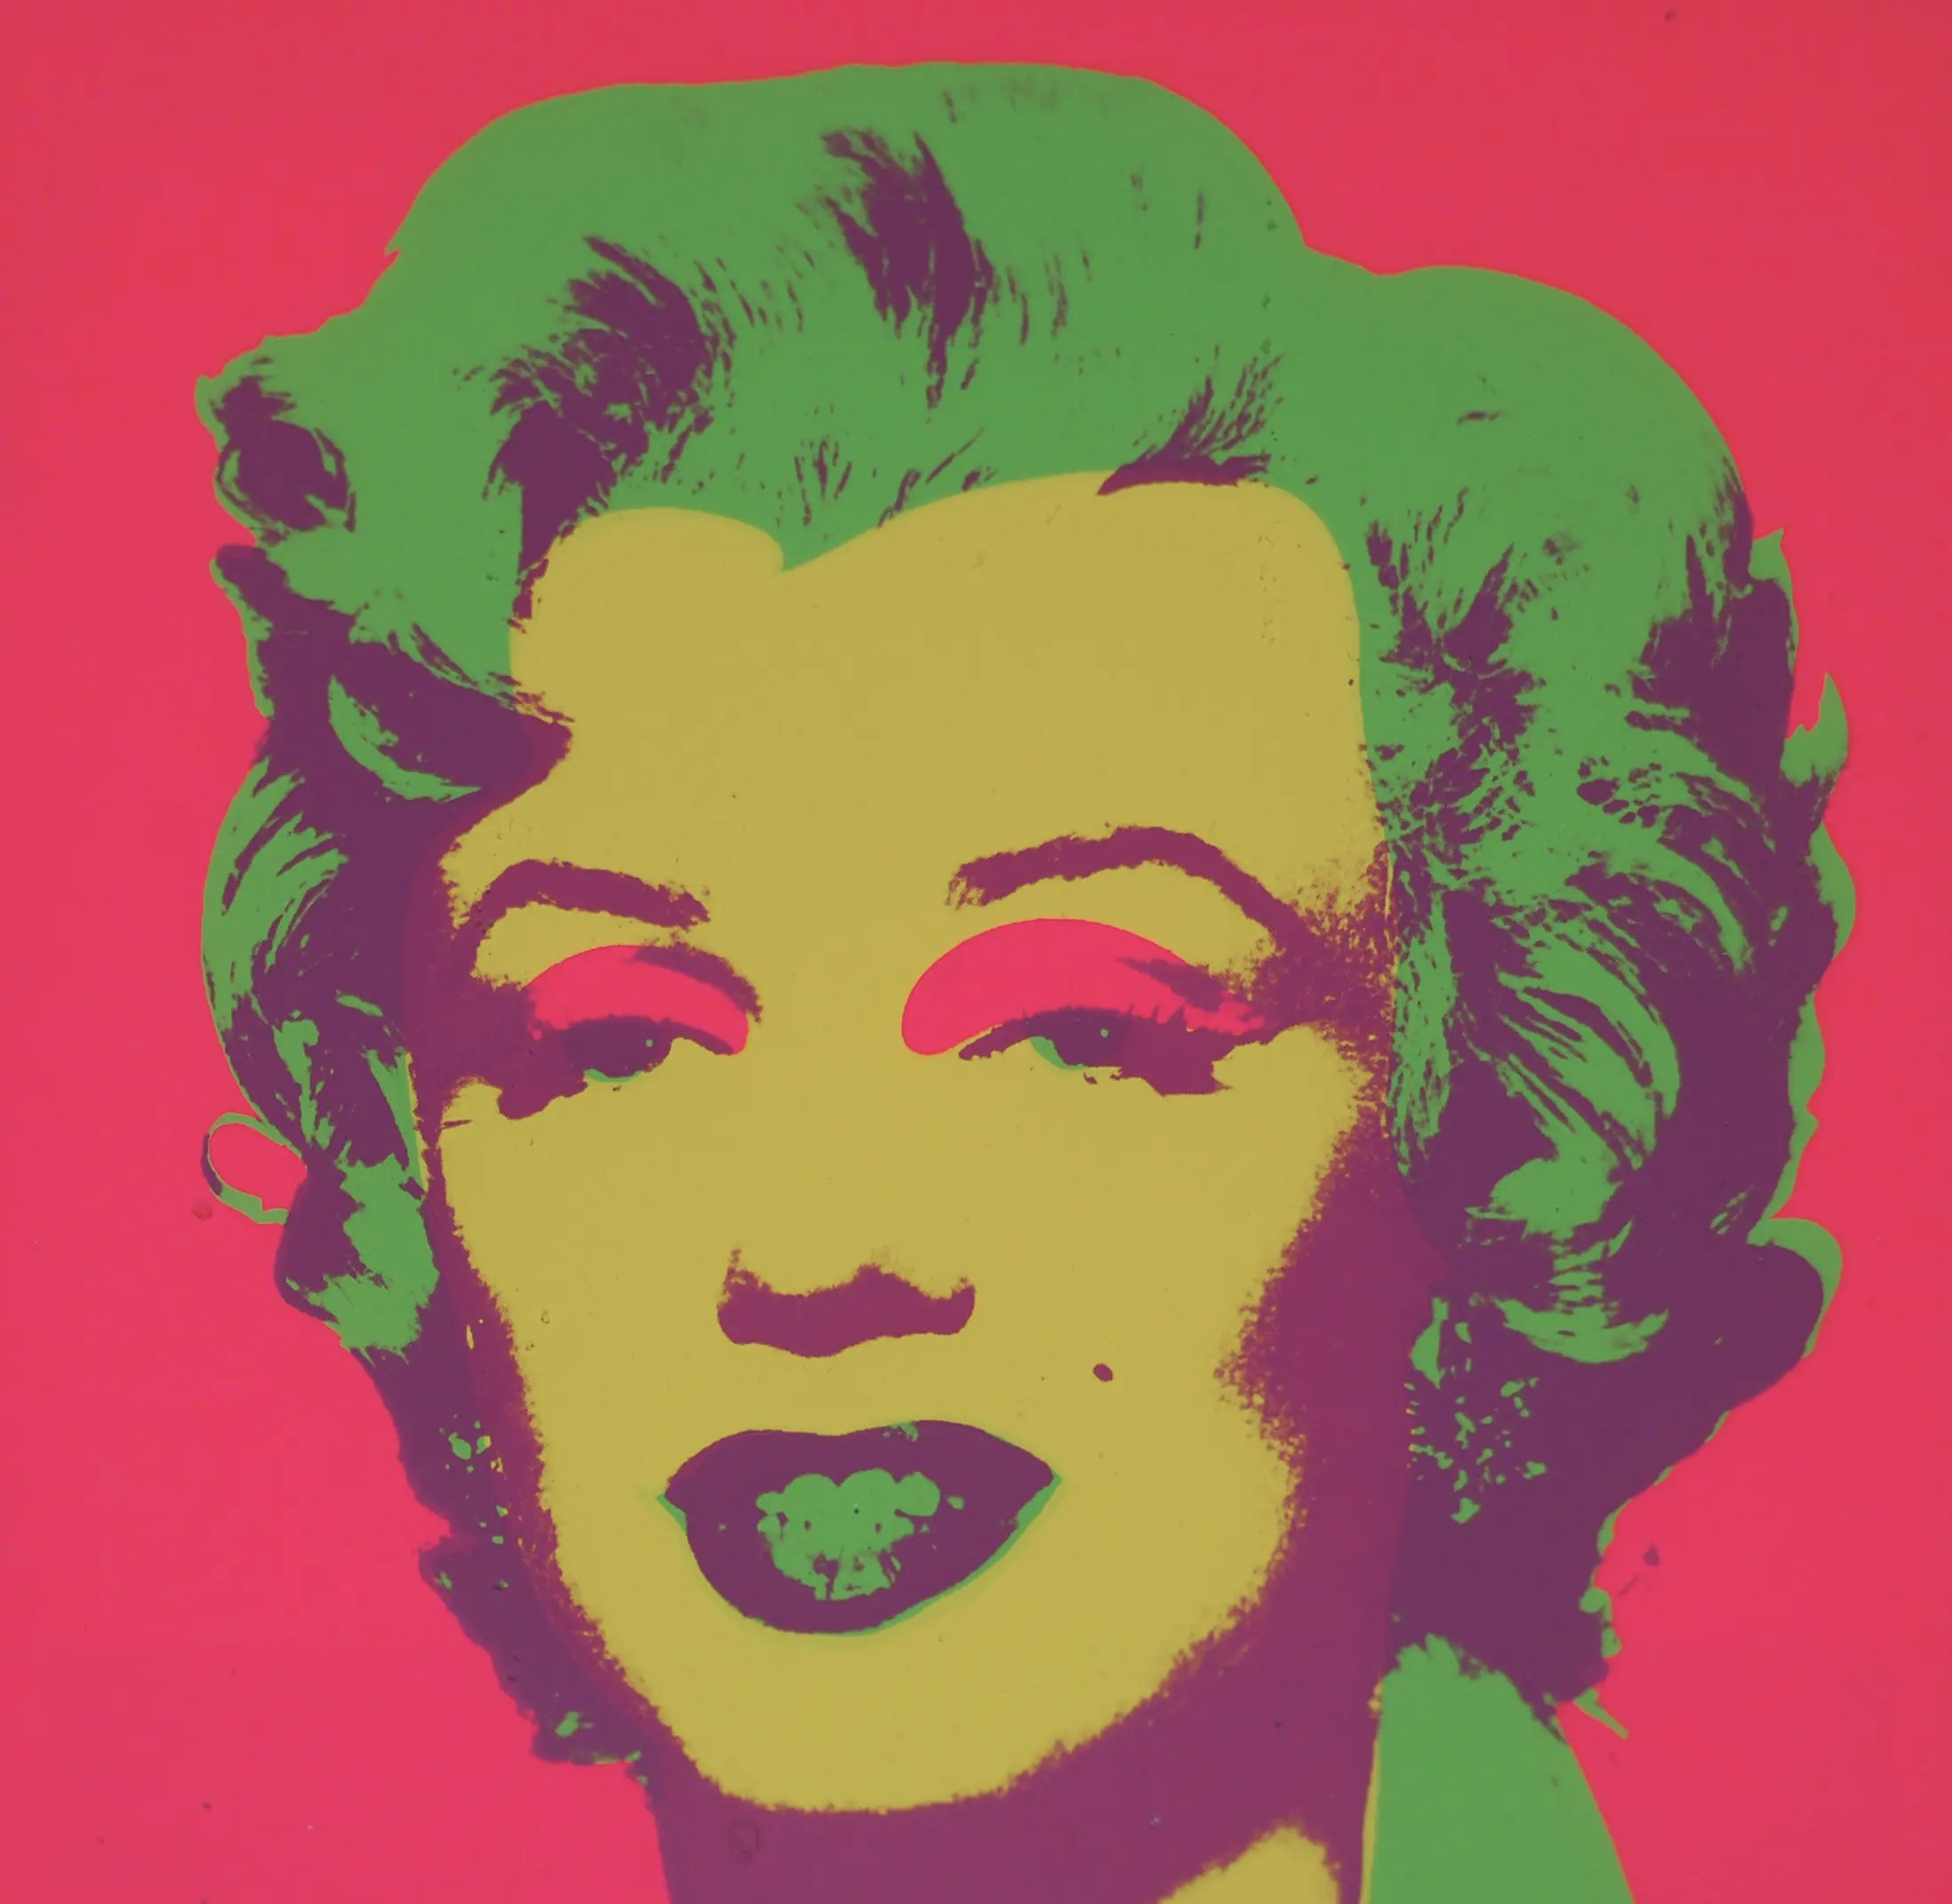 Marilyn Pop Art Andy Warhol Marilyn Monroe 21 By Andy Warhol Guy Hepner